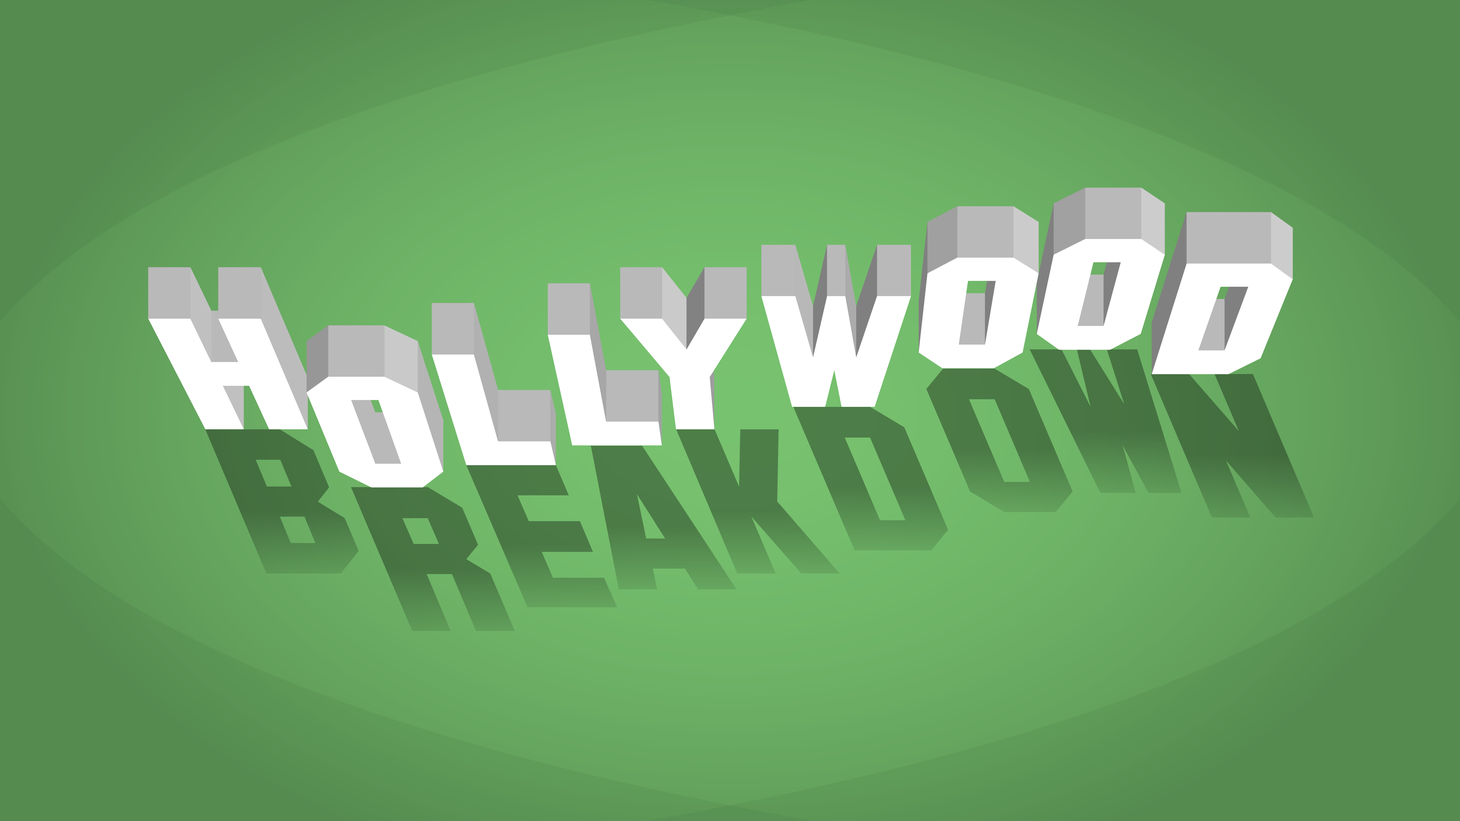 Matt Holzman sits in for Kim Masters and talks with John Horn about the real business ramifications of how disputes are handled in Hollywood. This week Charlie Sheen was fired from Two and a Half Men and now Sheen is suing for $100 million.